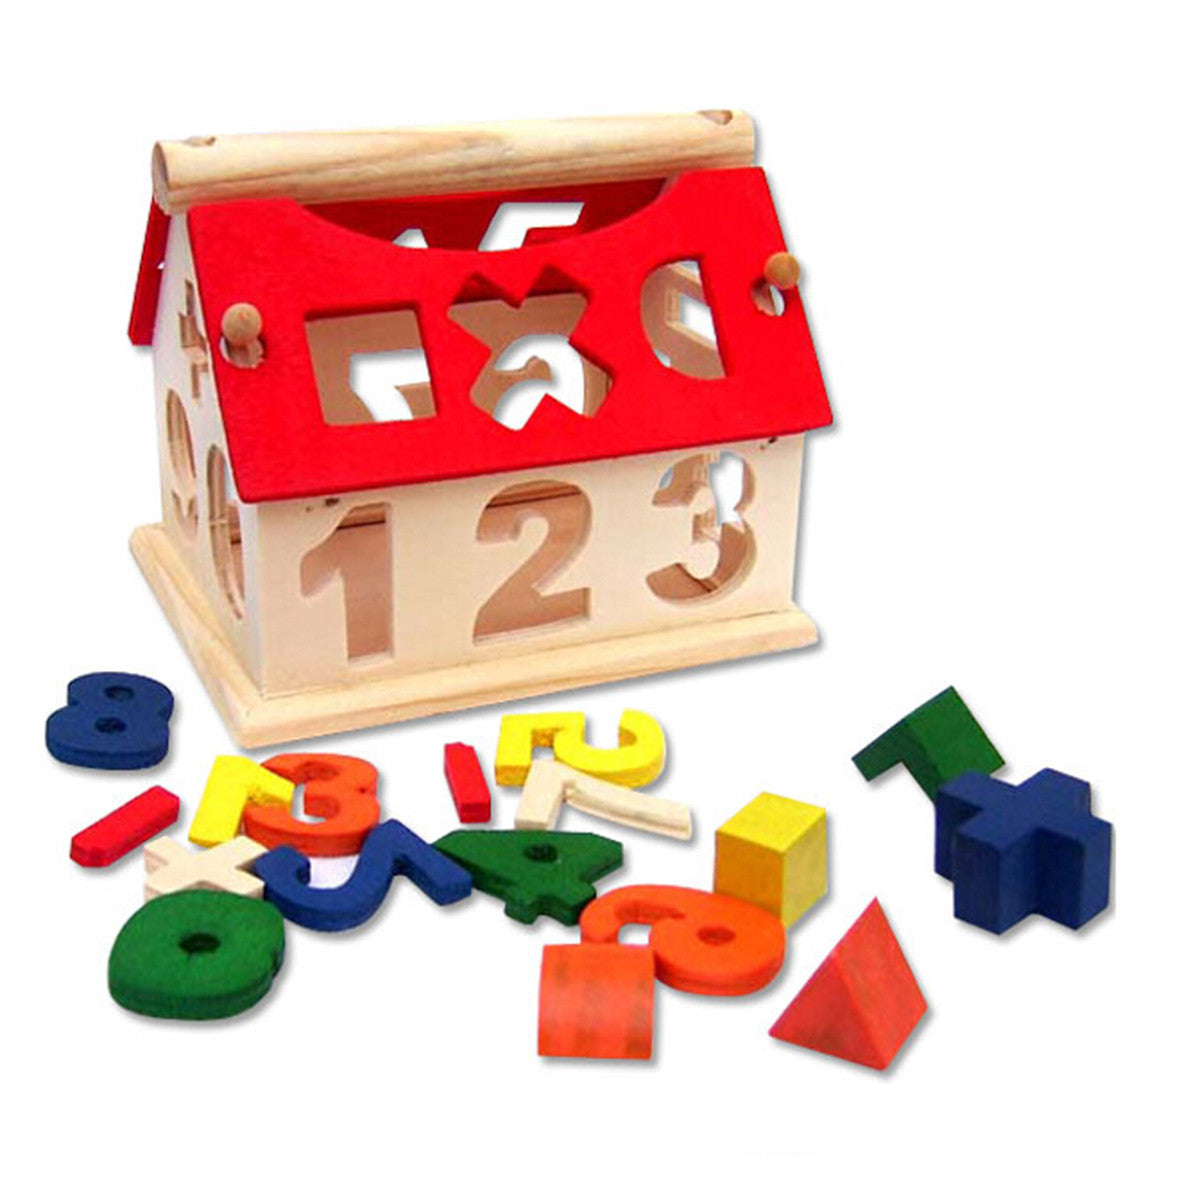 Numbers Arithmetic Signs Wooden Building Blocks Toy Lovableorganics